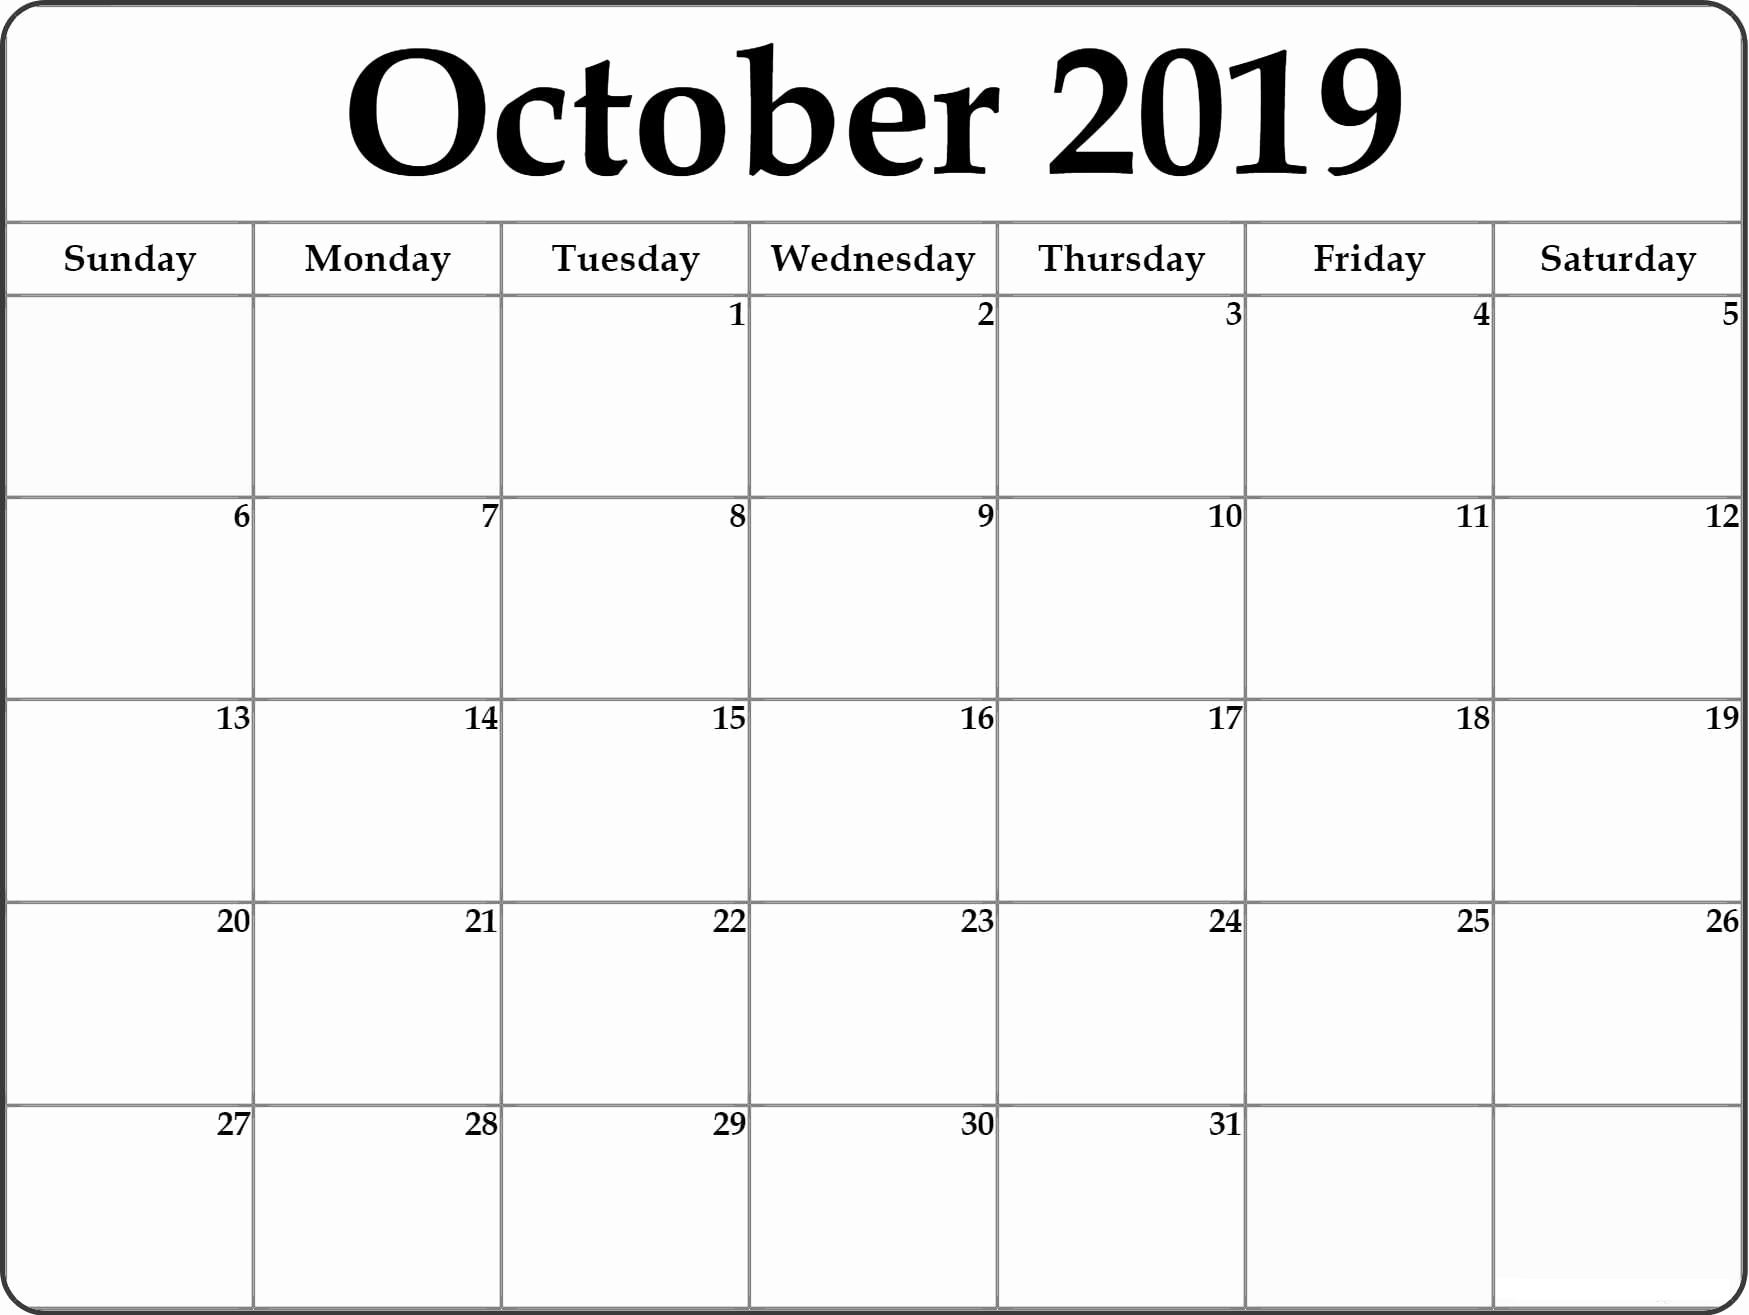 Fillable Calendar for October 2019 With Notes